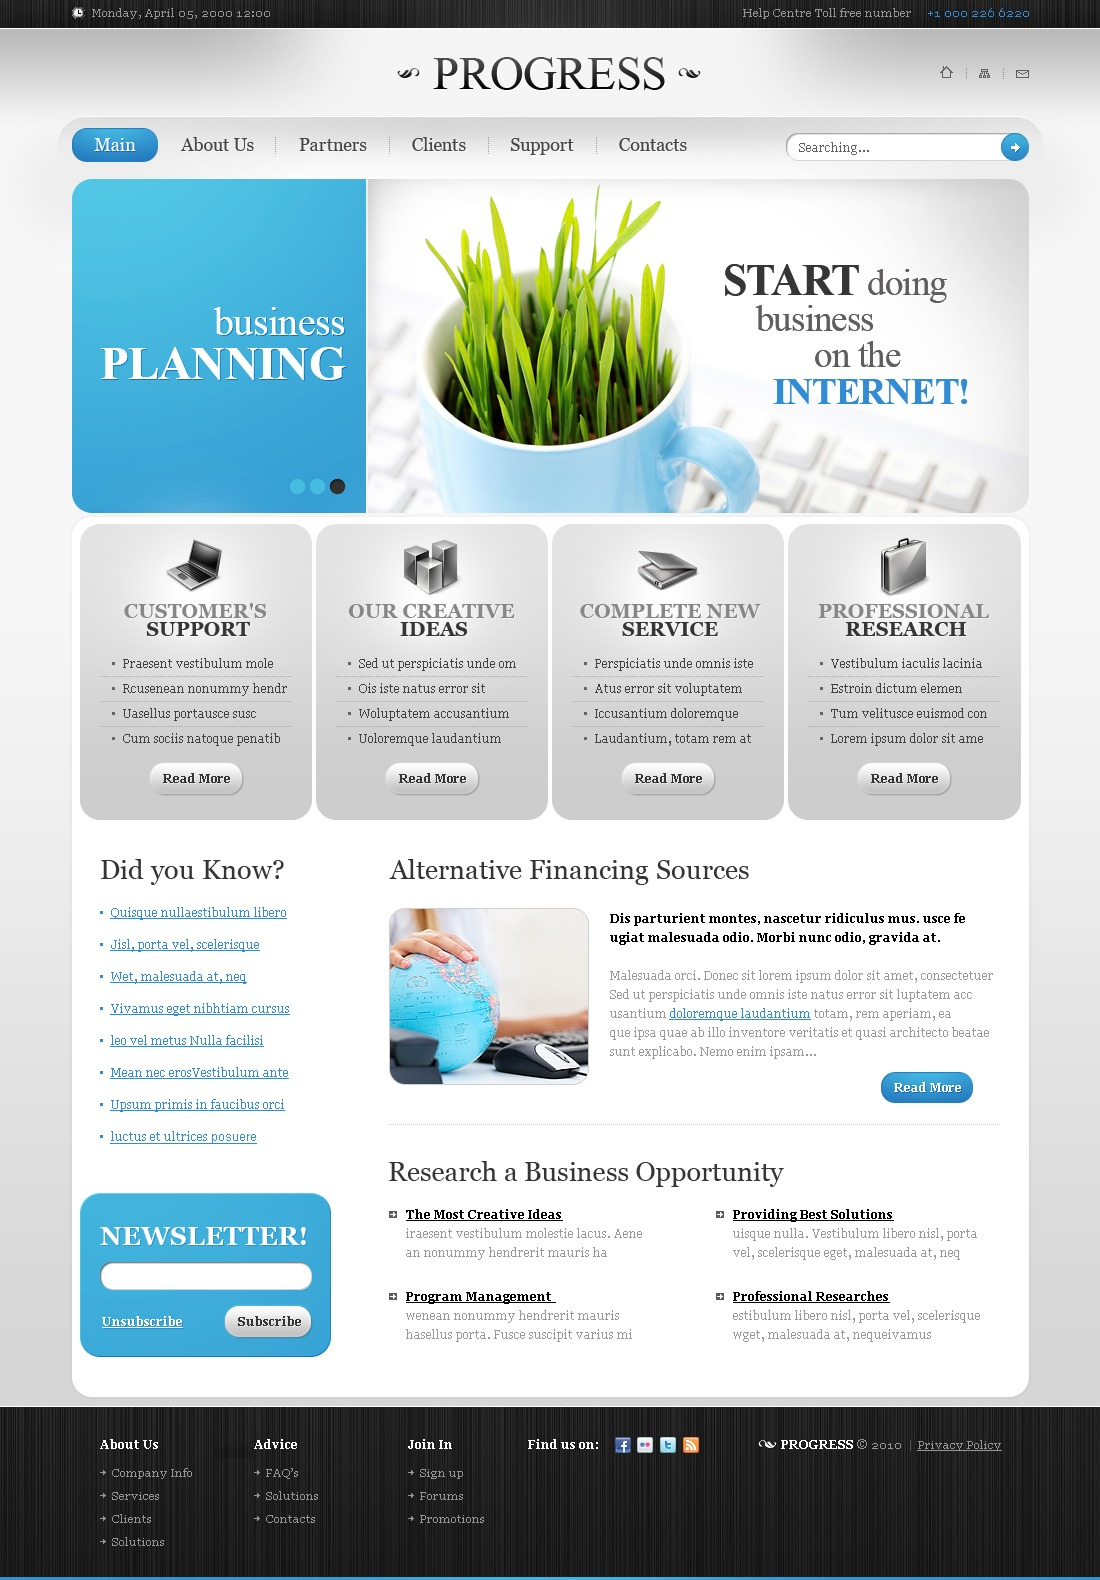 The Progress Business Company PSD Design 54079, one of the best PSD templates of its kind (business, flash 8, wide), also known as progress business company PSD template, corporate solutions PSD template, innovations PSD template, contacts PSD template, service PSD template, support PSD template, information dealer PSD template, stocks PSD template, team PSD template, success PSD template, money PSD template, marketing PSD template, director PSD template, manager PSD template, analytics PSD template, planning PSD template, limited PSD template, office PSD template, sales and related with progress business company, corporate solutions, innovations, contacts, service, support, information dealer, stocks, team, success, money, marketing, director, manager, analytics, planning, limited, office, sales, etc.